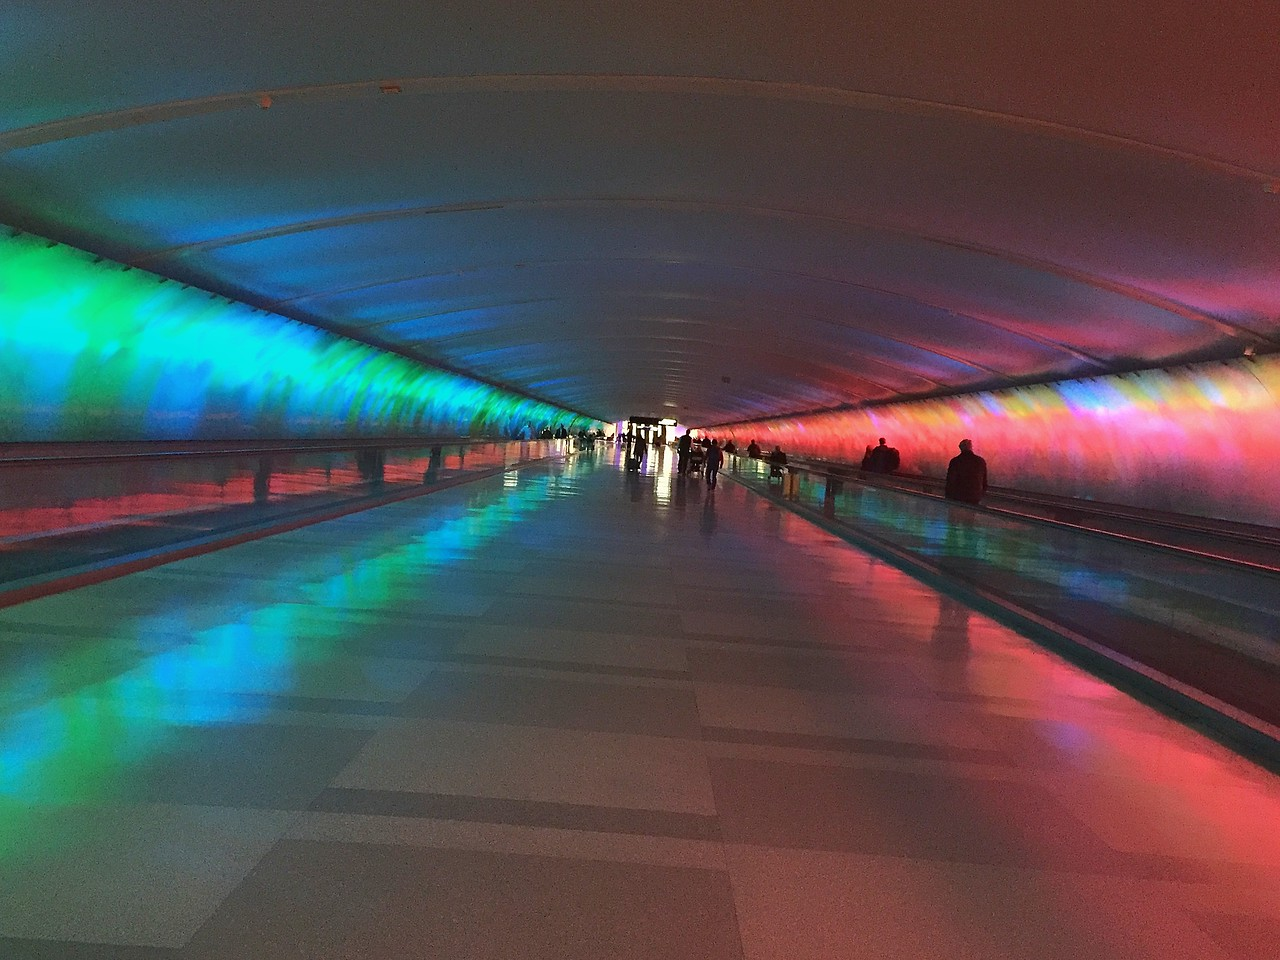 Time Tunnel at Detroit Airport